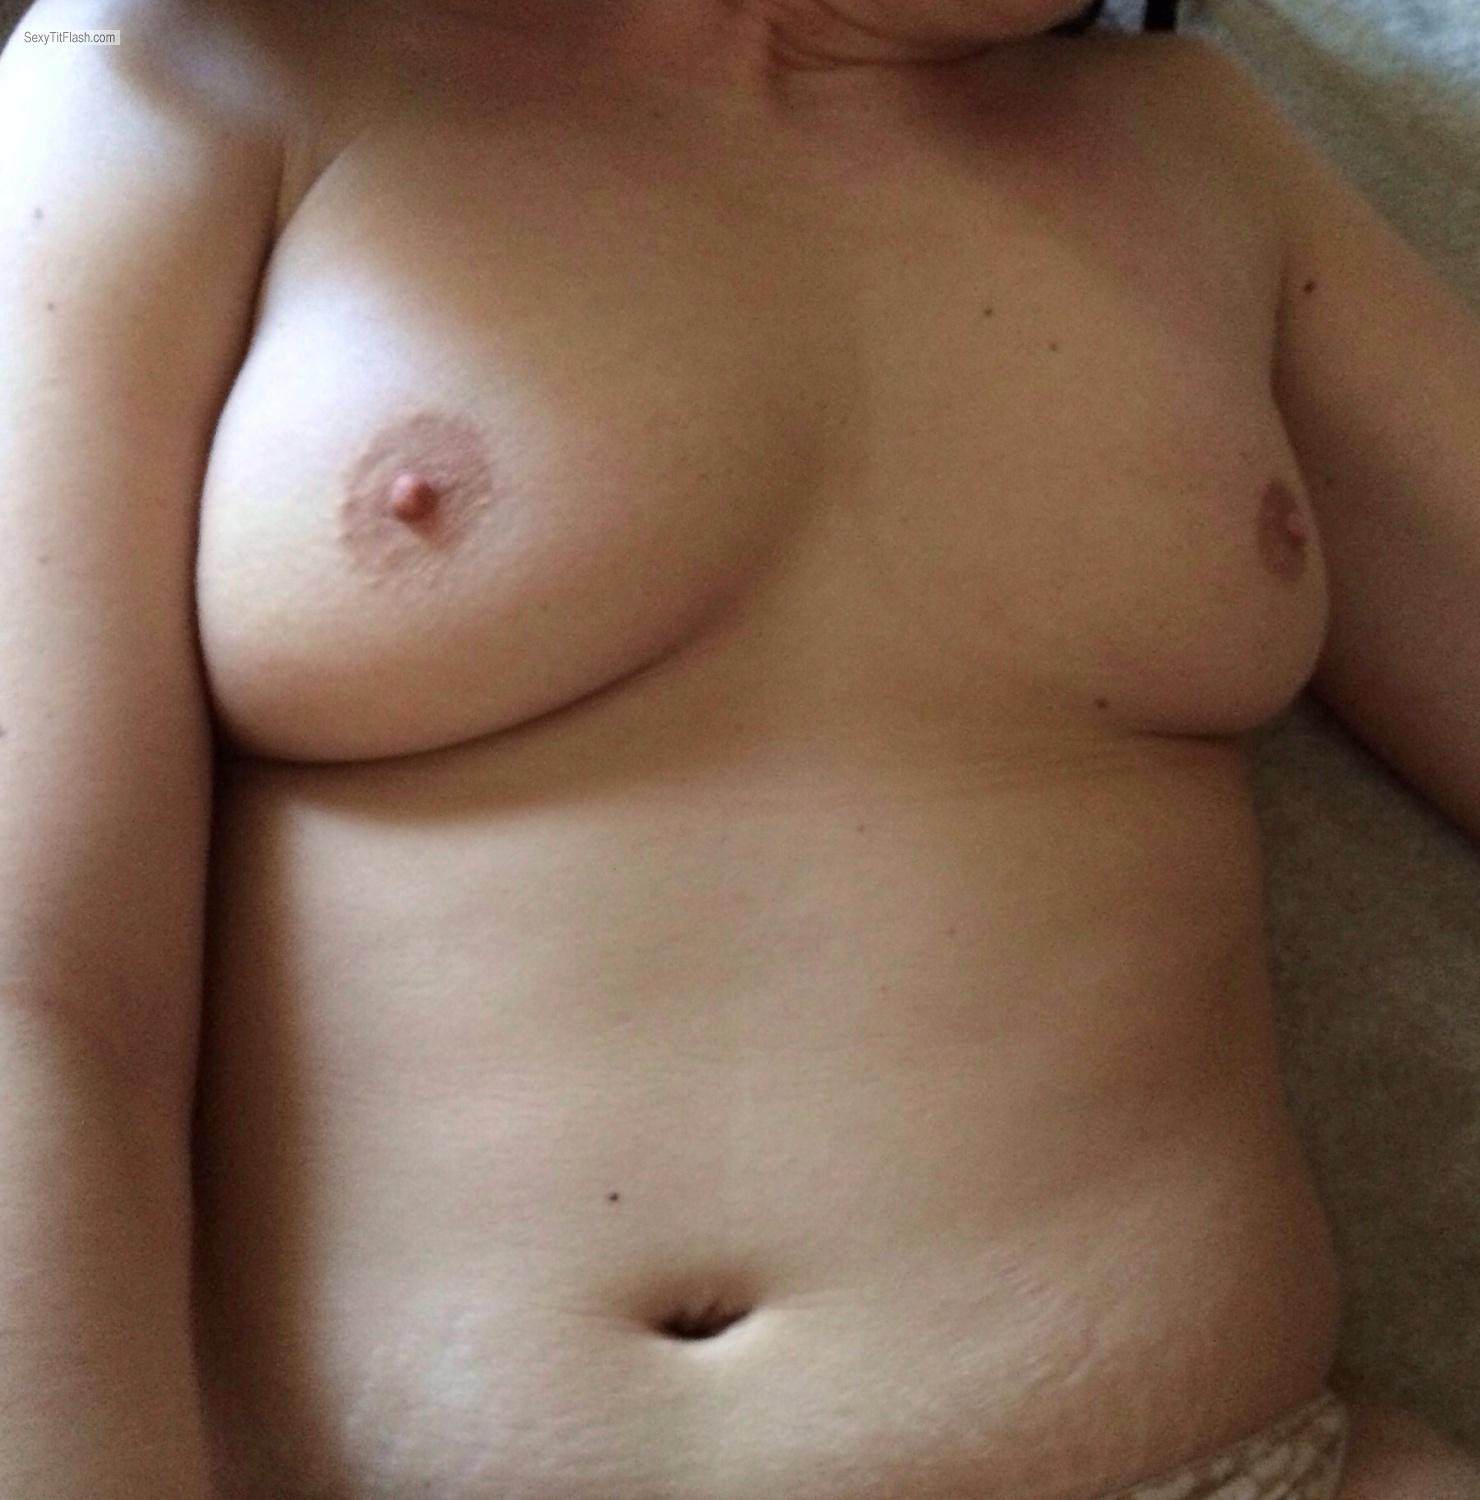 Medium Tits Best Titties